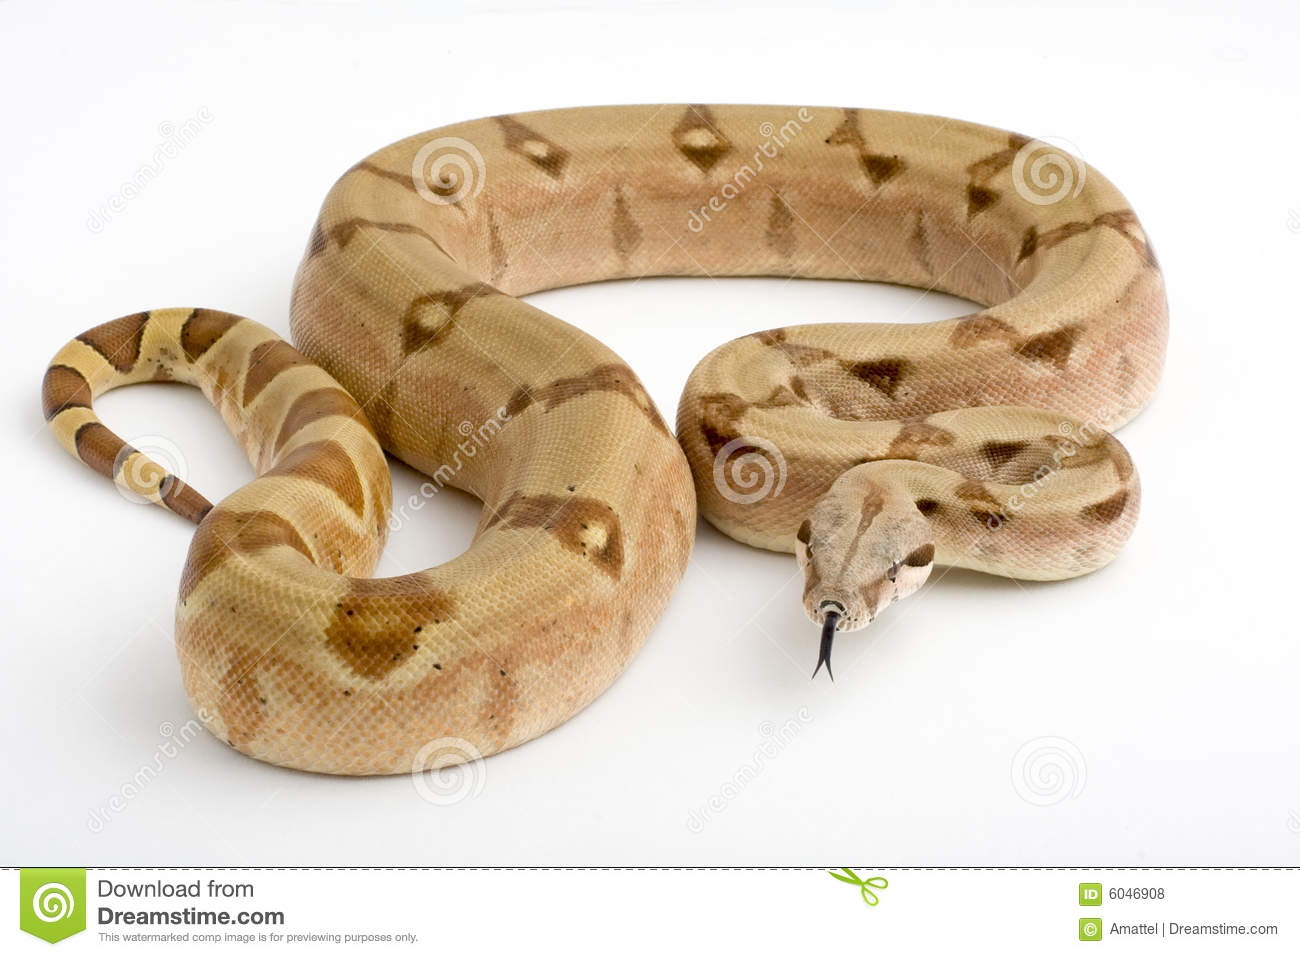 Boa Constrictor isolated on white background